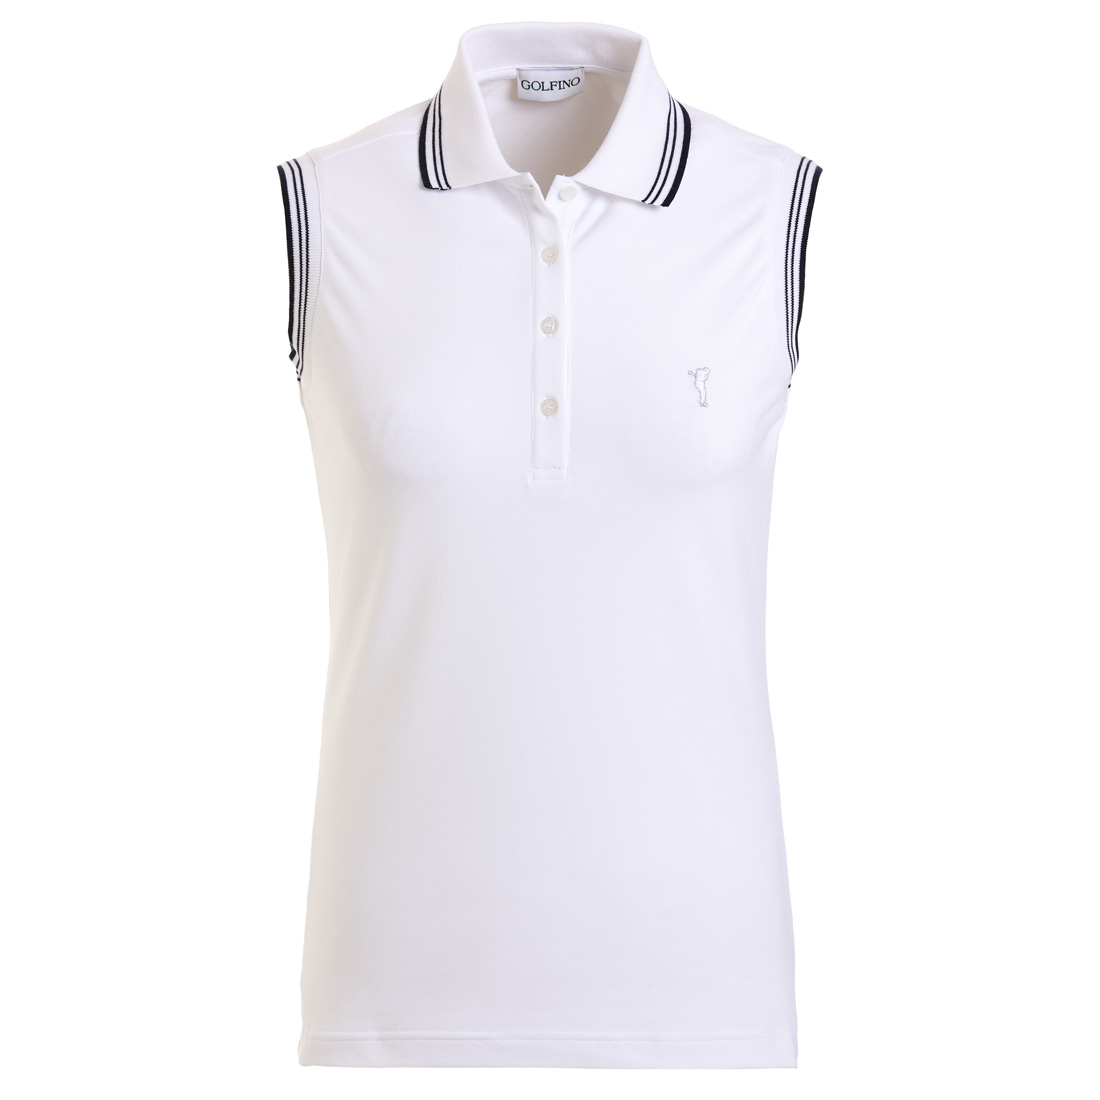 Sleeveless ladies' golf polo shirt